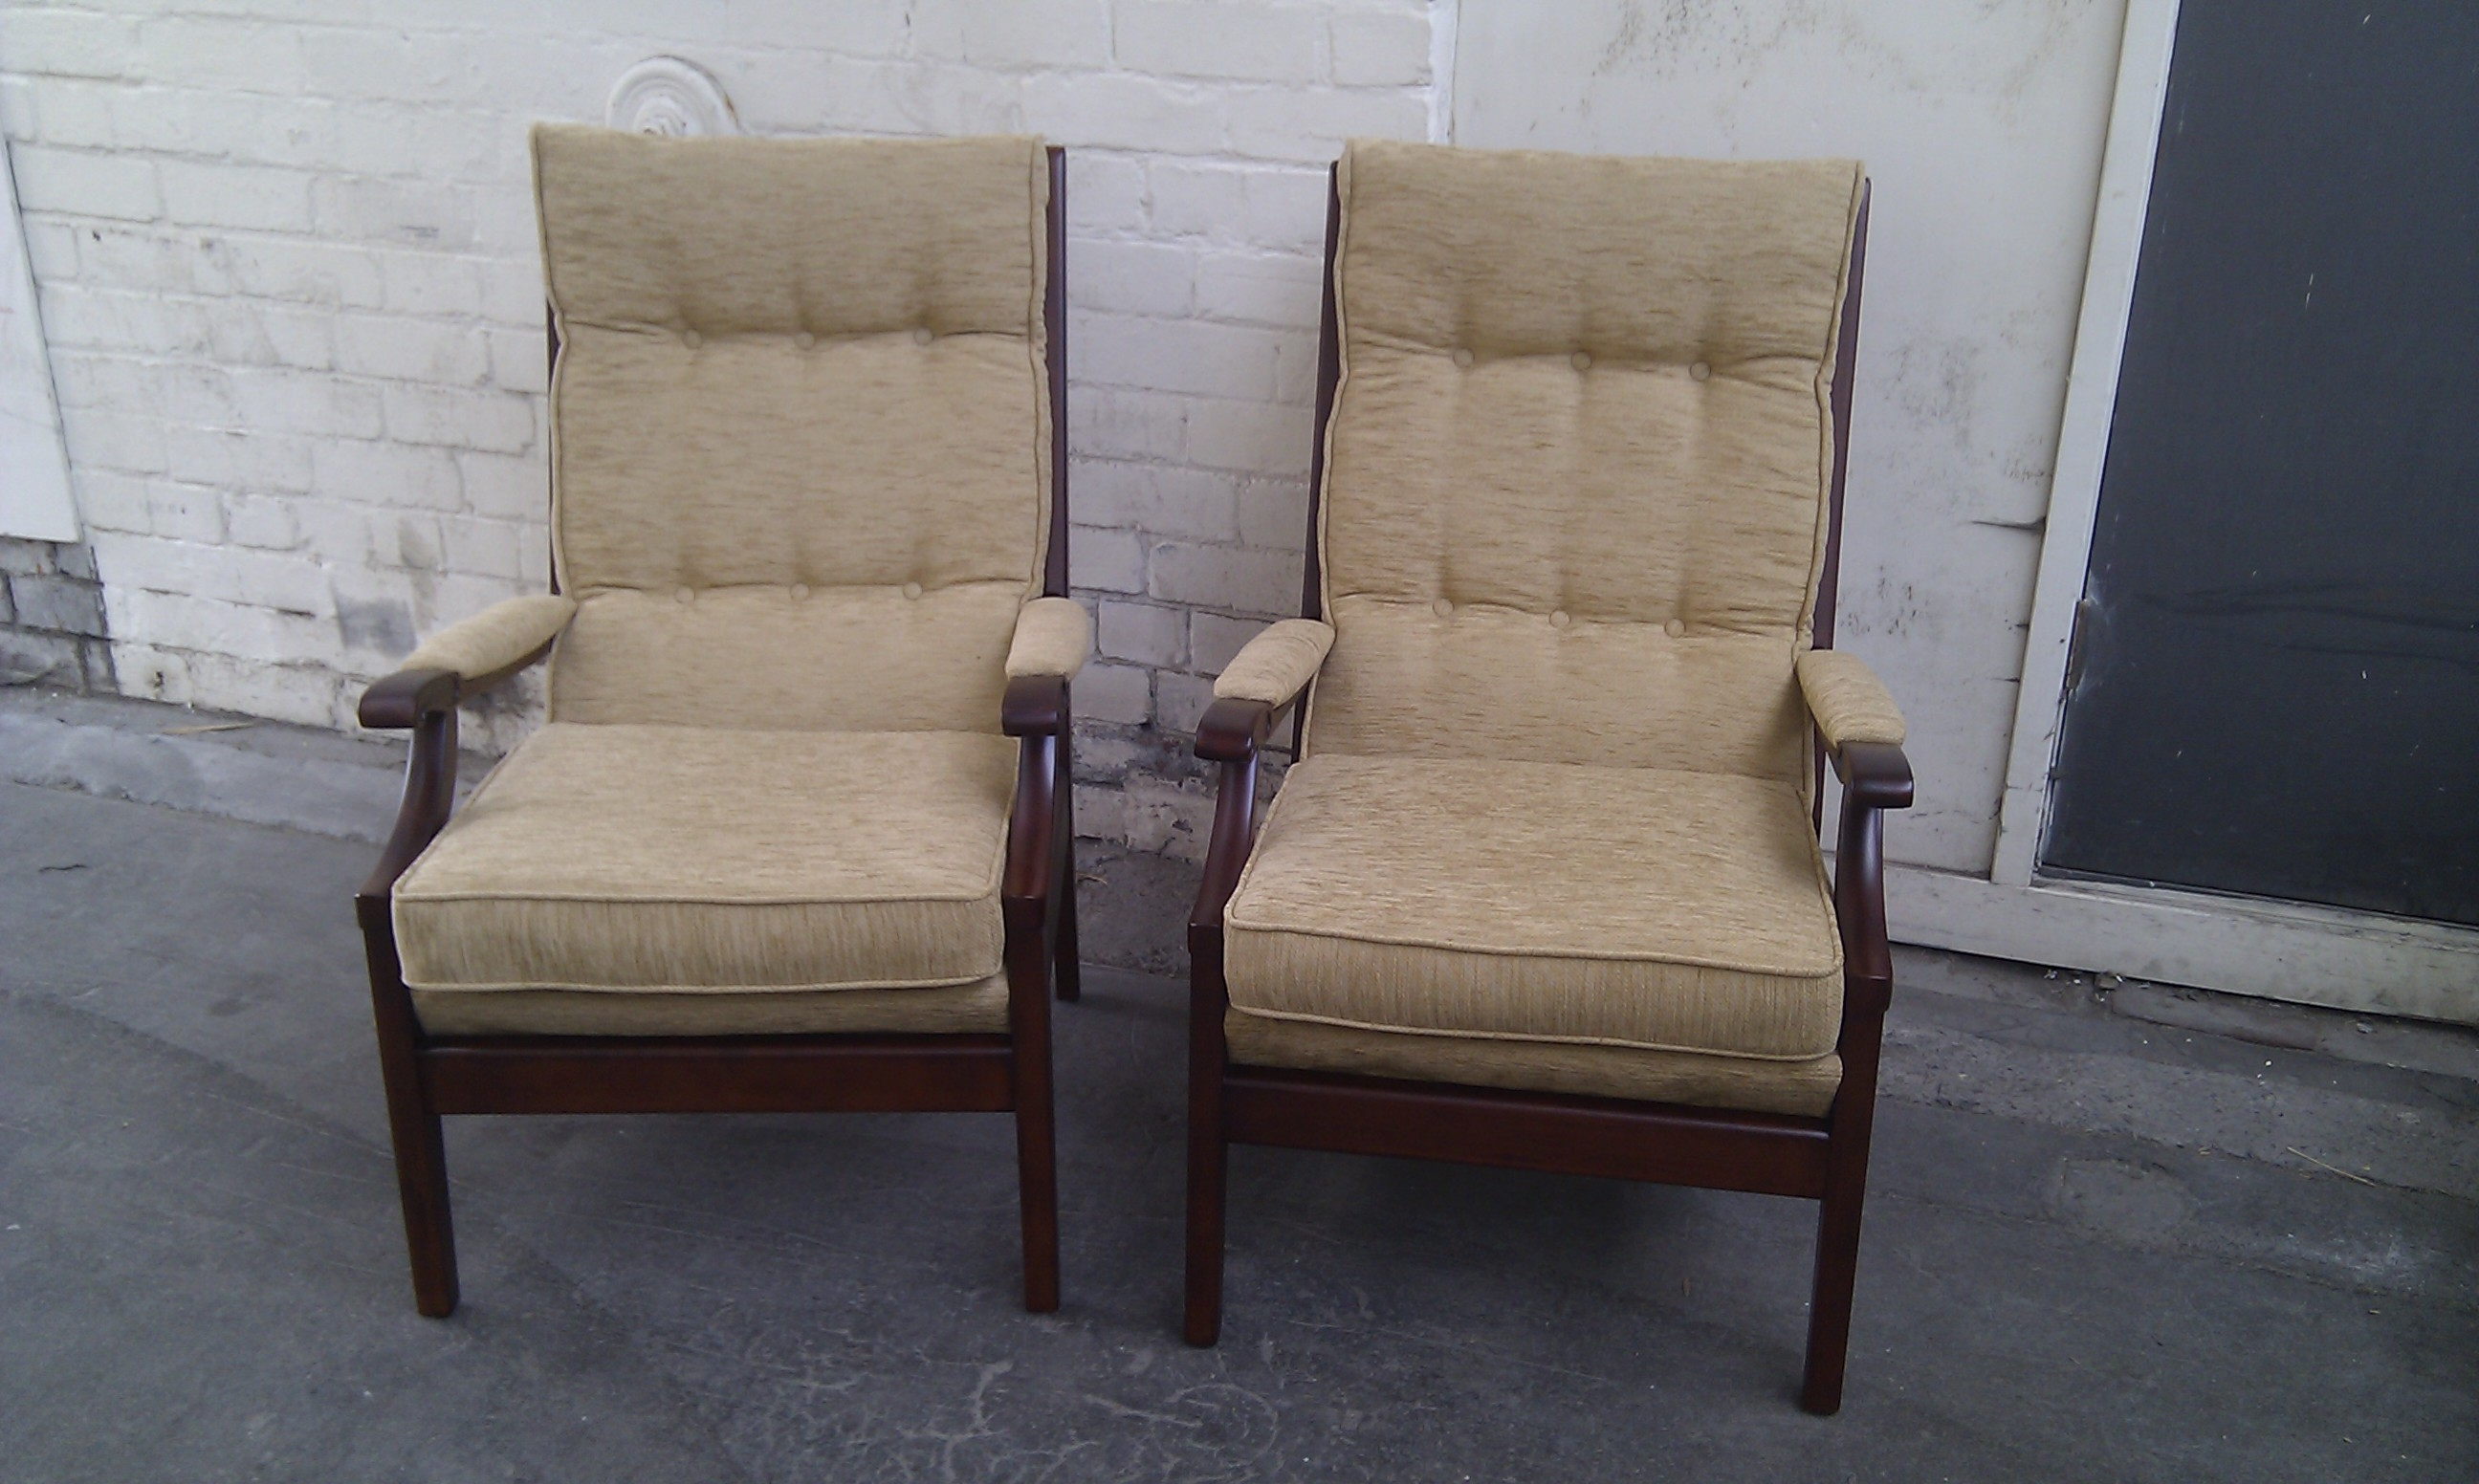 Amazing Premium Cintique Chair Covers Throughout Cintique Abbey Upholstery And French Polishing Leeds (Image 2 of 15)